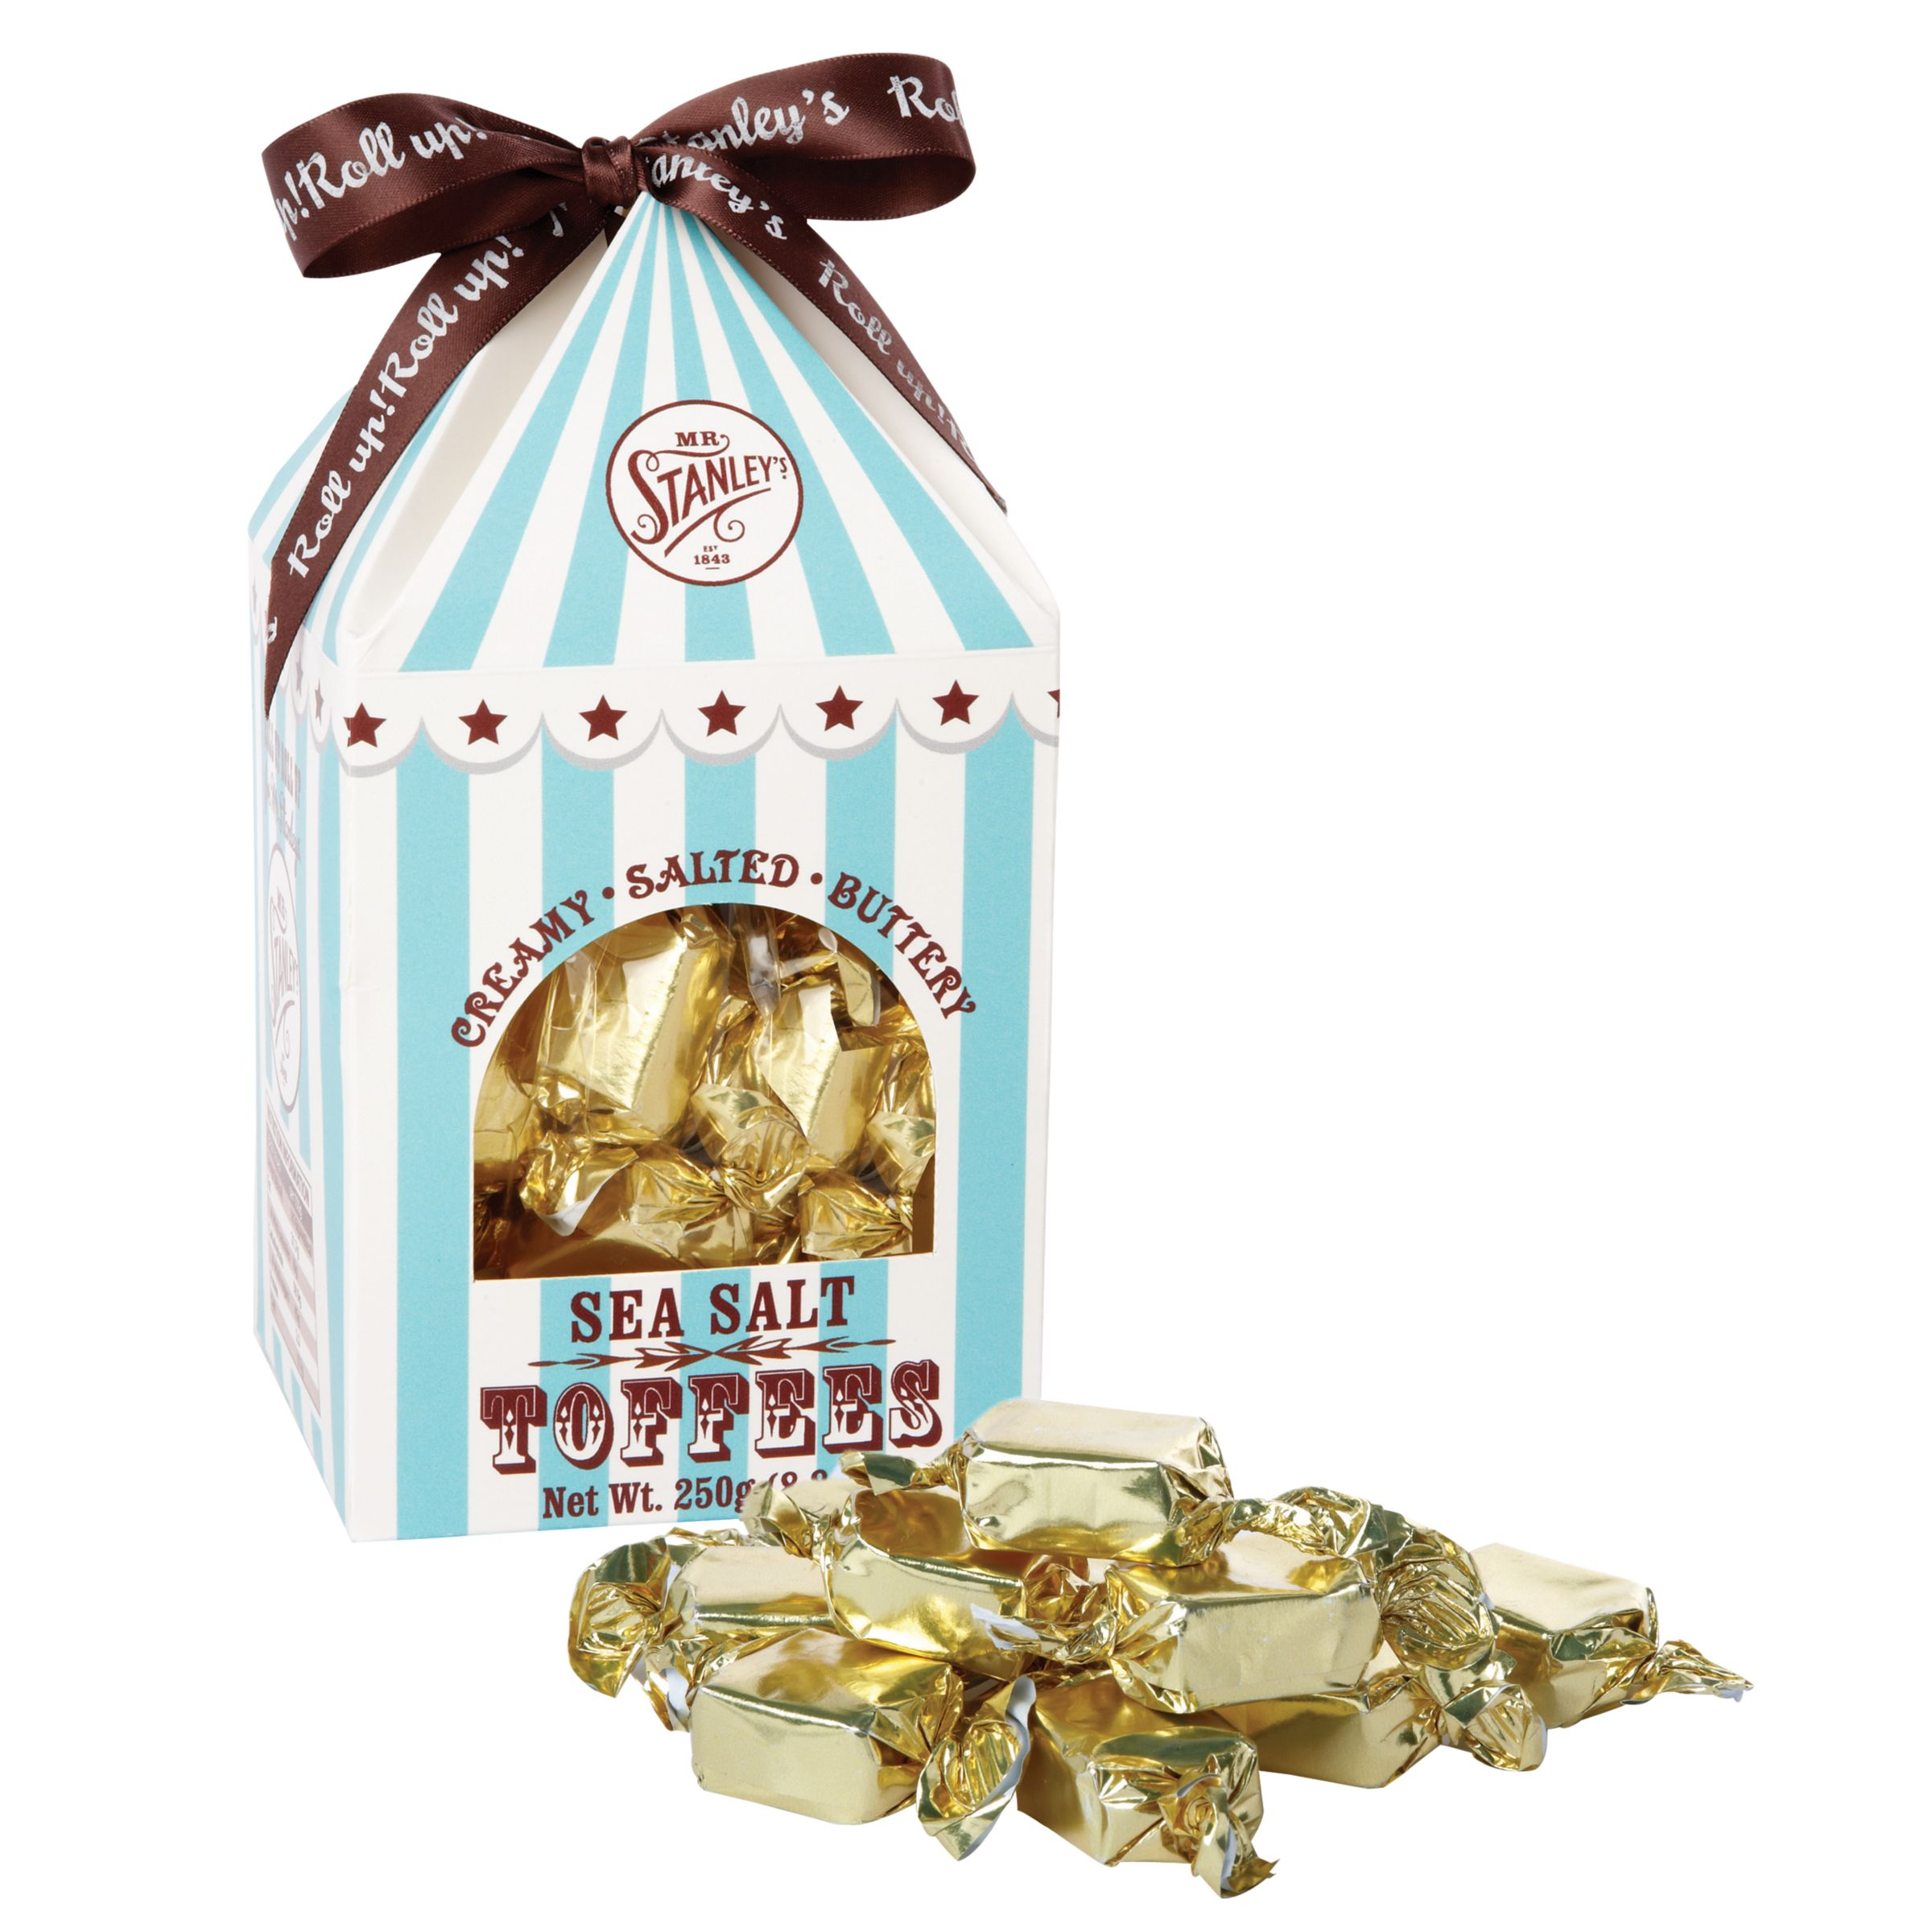 Mr Stanley's Mr Stanley's Sea Salted Toffees, 250g